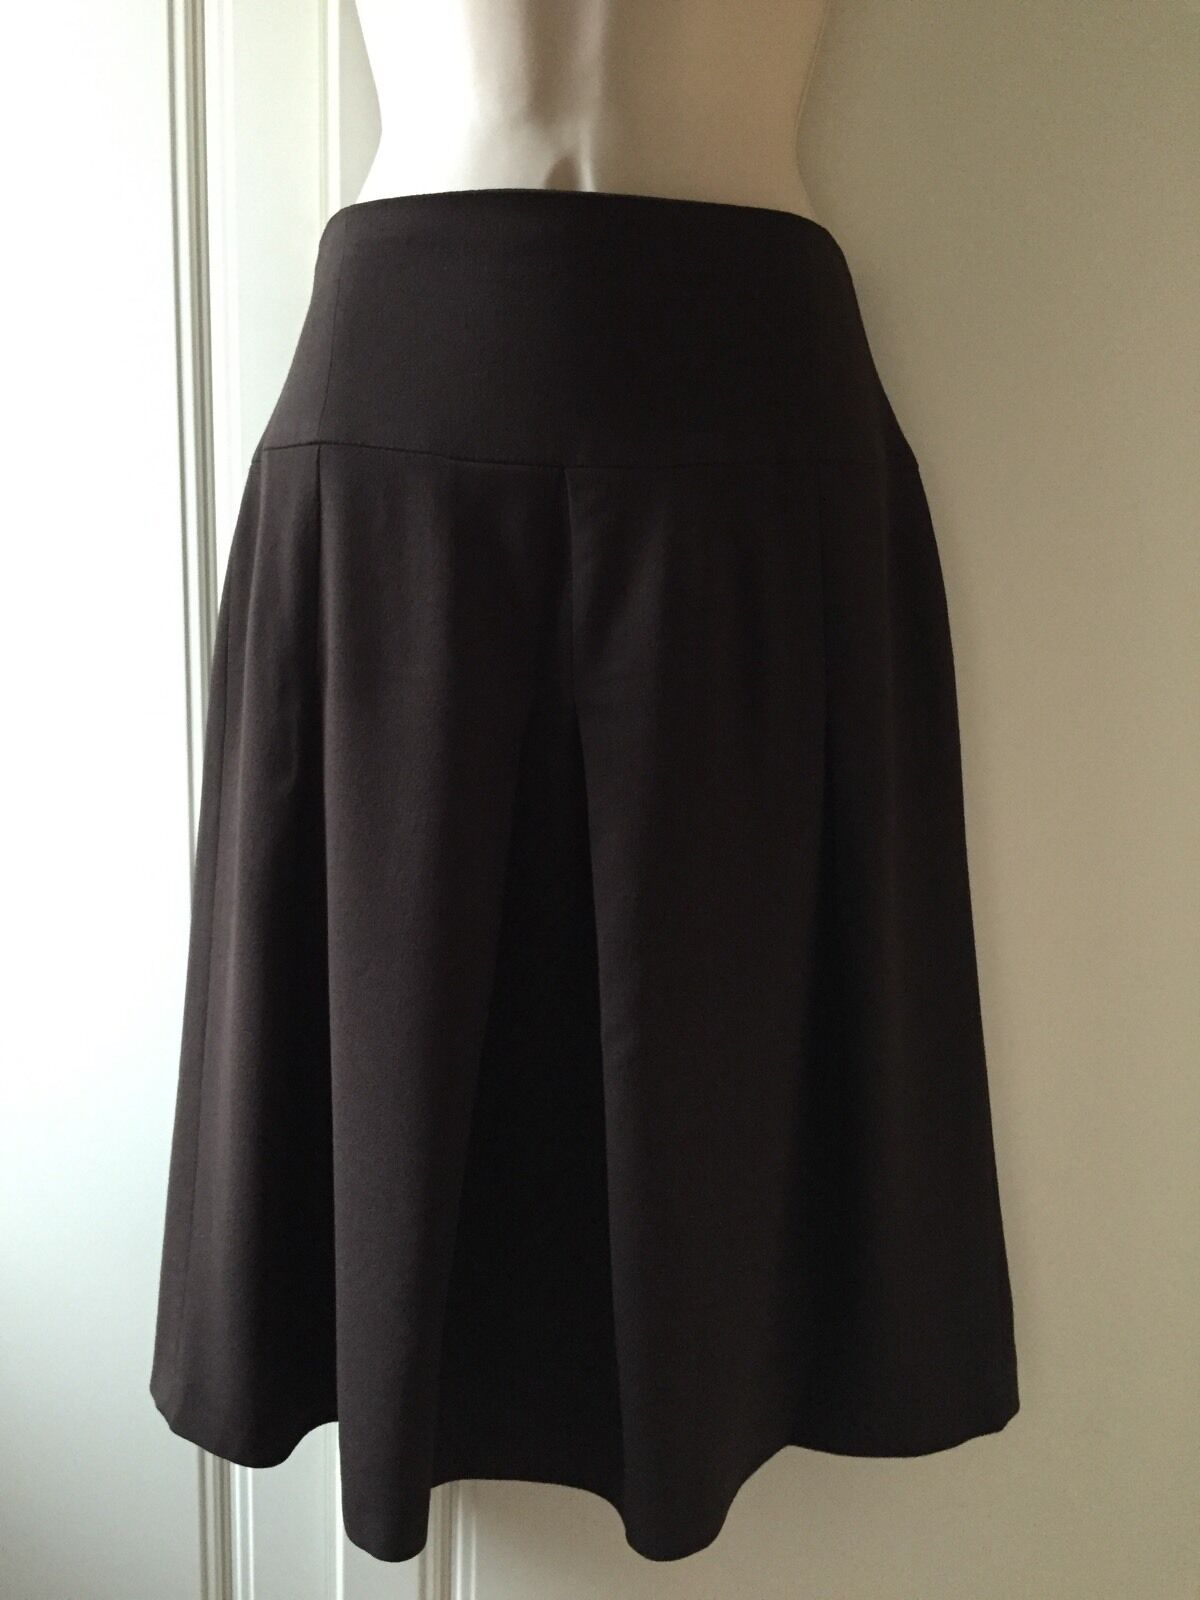 CARACTERE Brown Skirt - Size 10 - BNWT - RRP